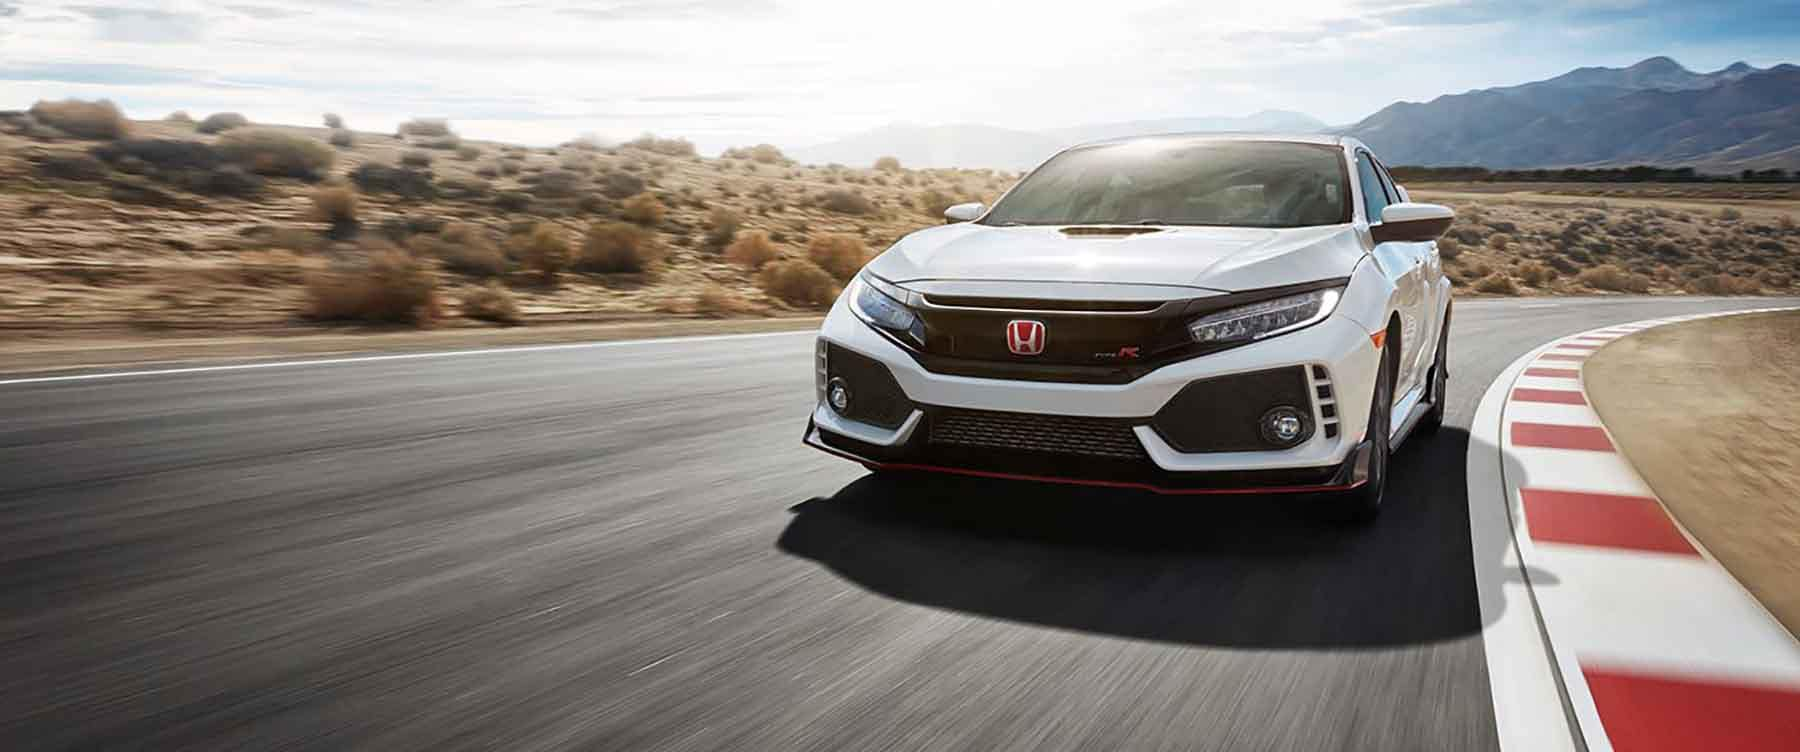 2018 Honda Civic Type R driving fast around a corner